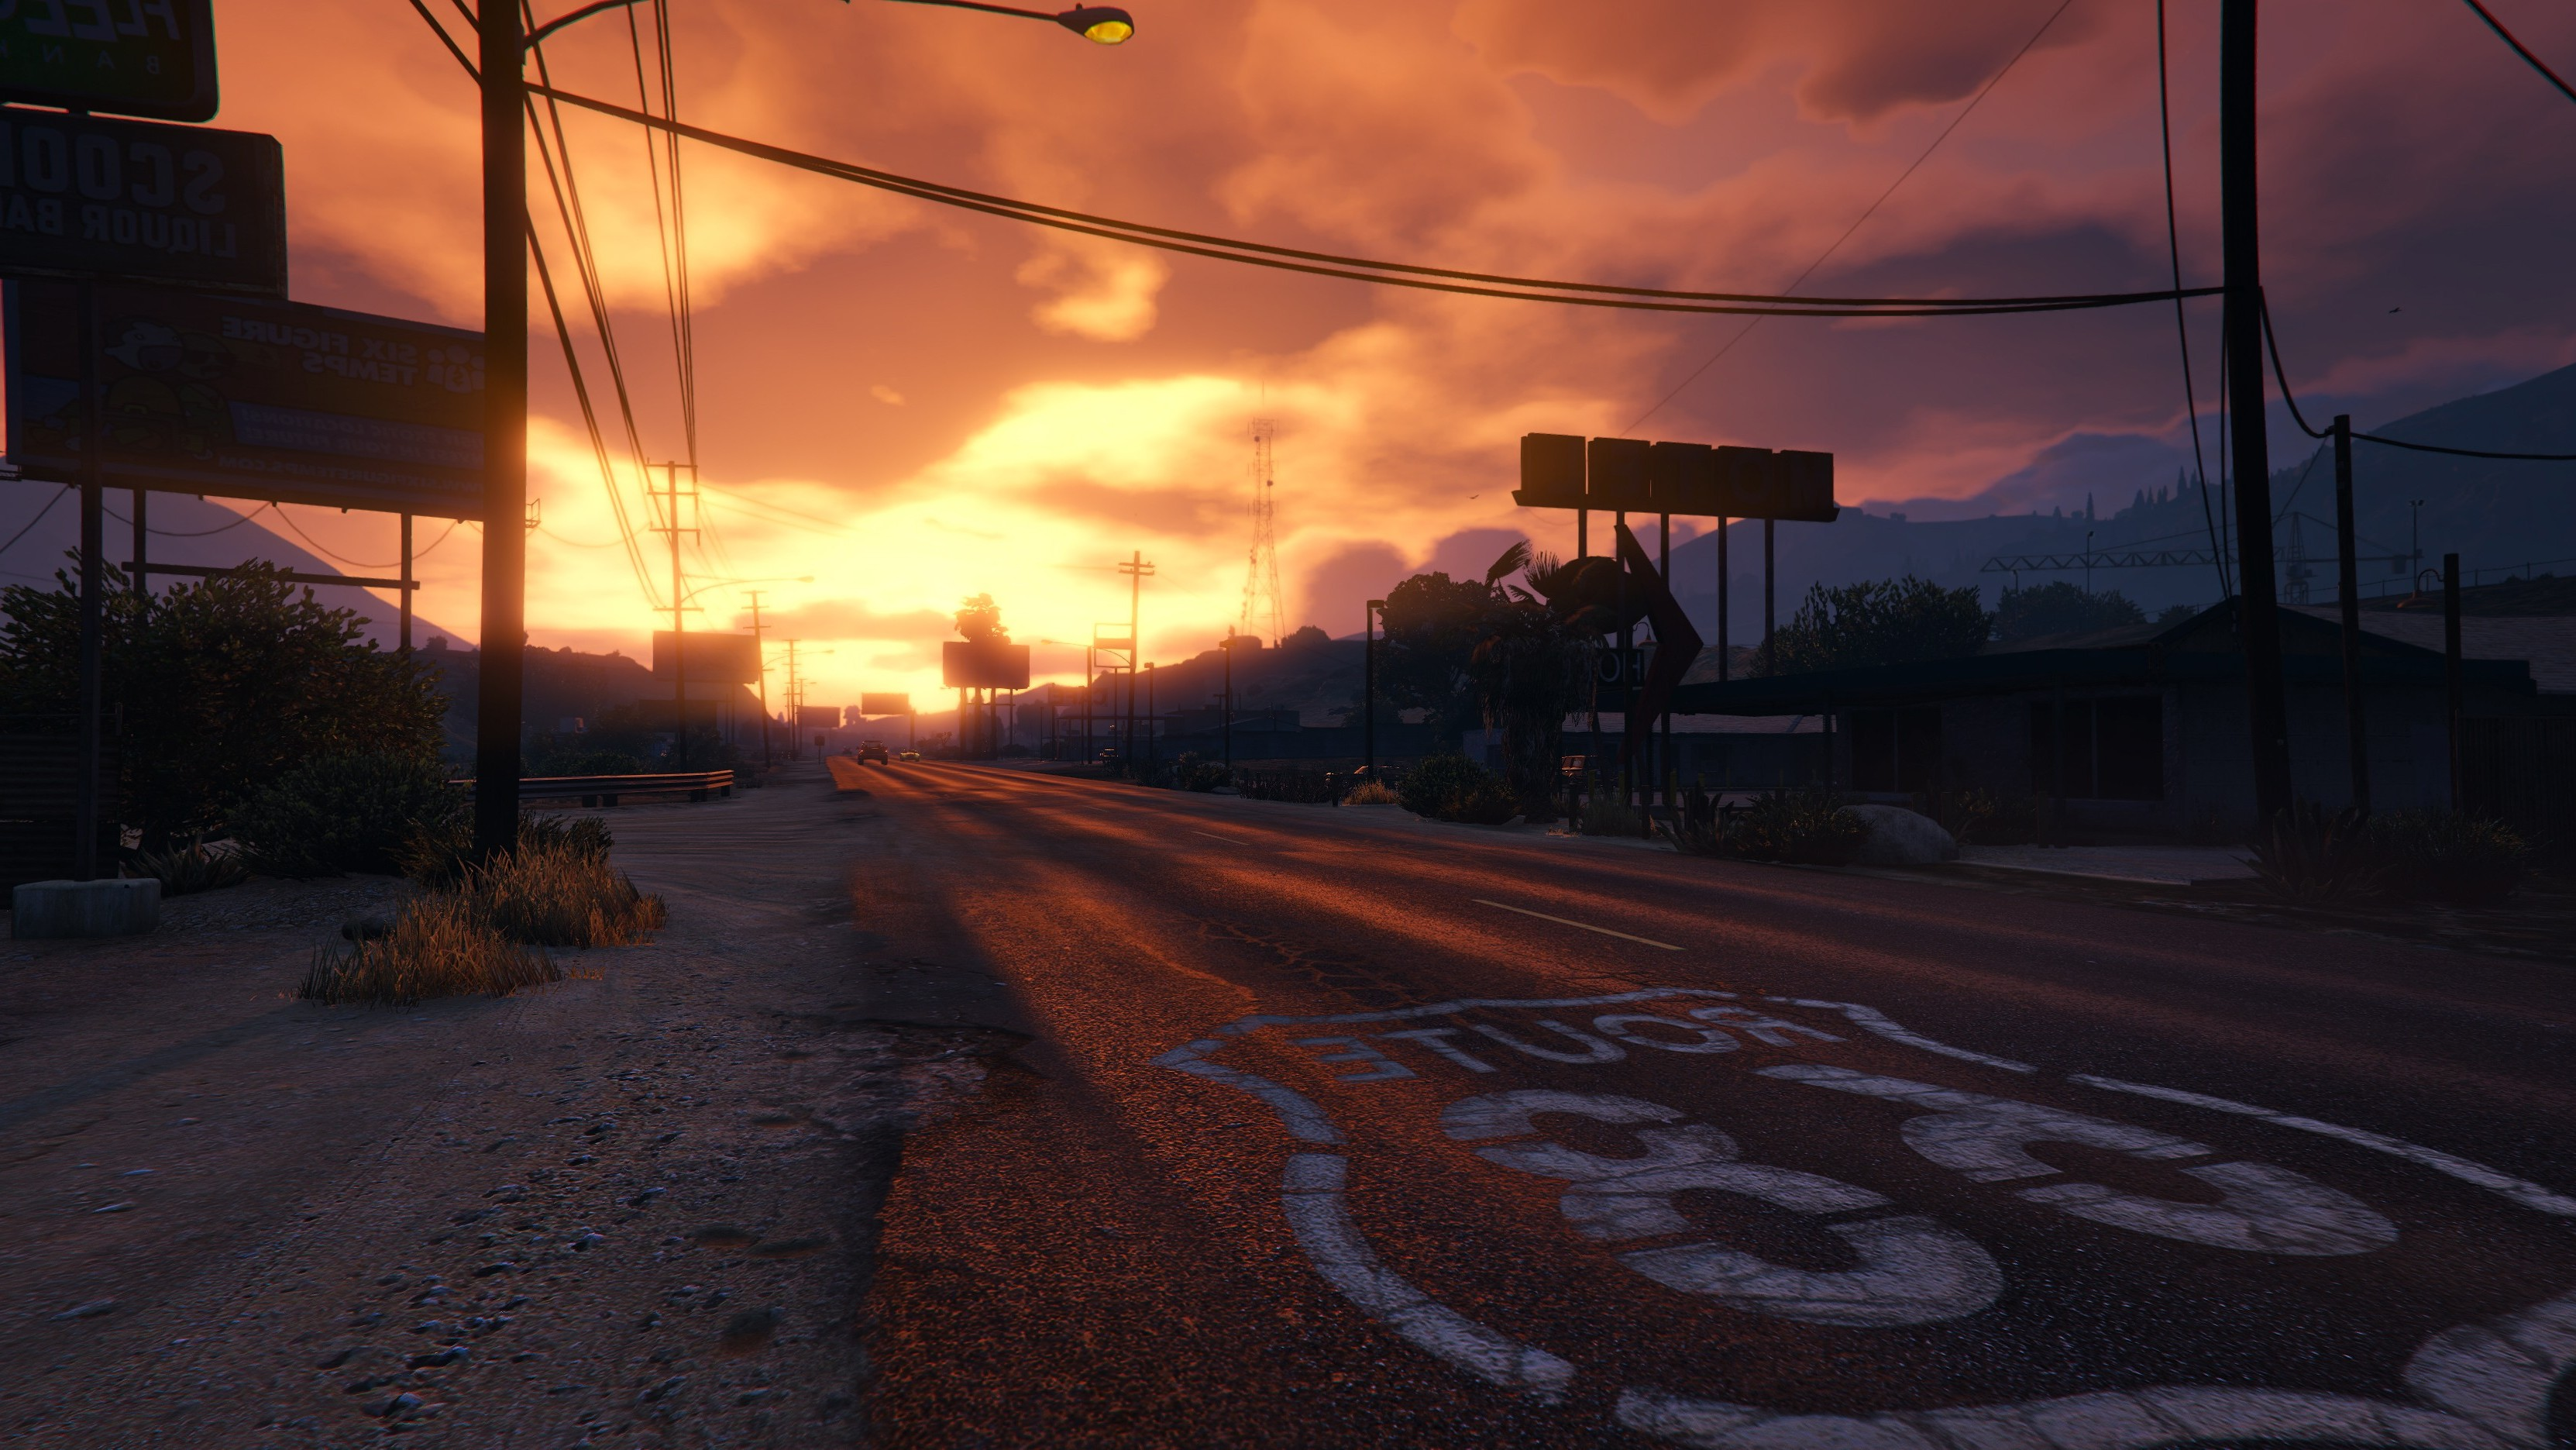 1280x1024 gta 5 sunset 1280x1024 resolution hd 4k wallpapers, images